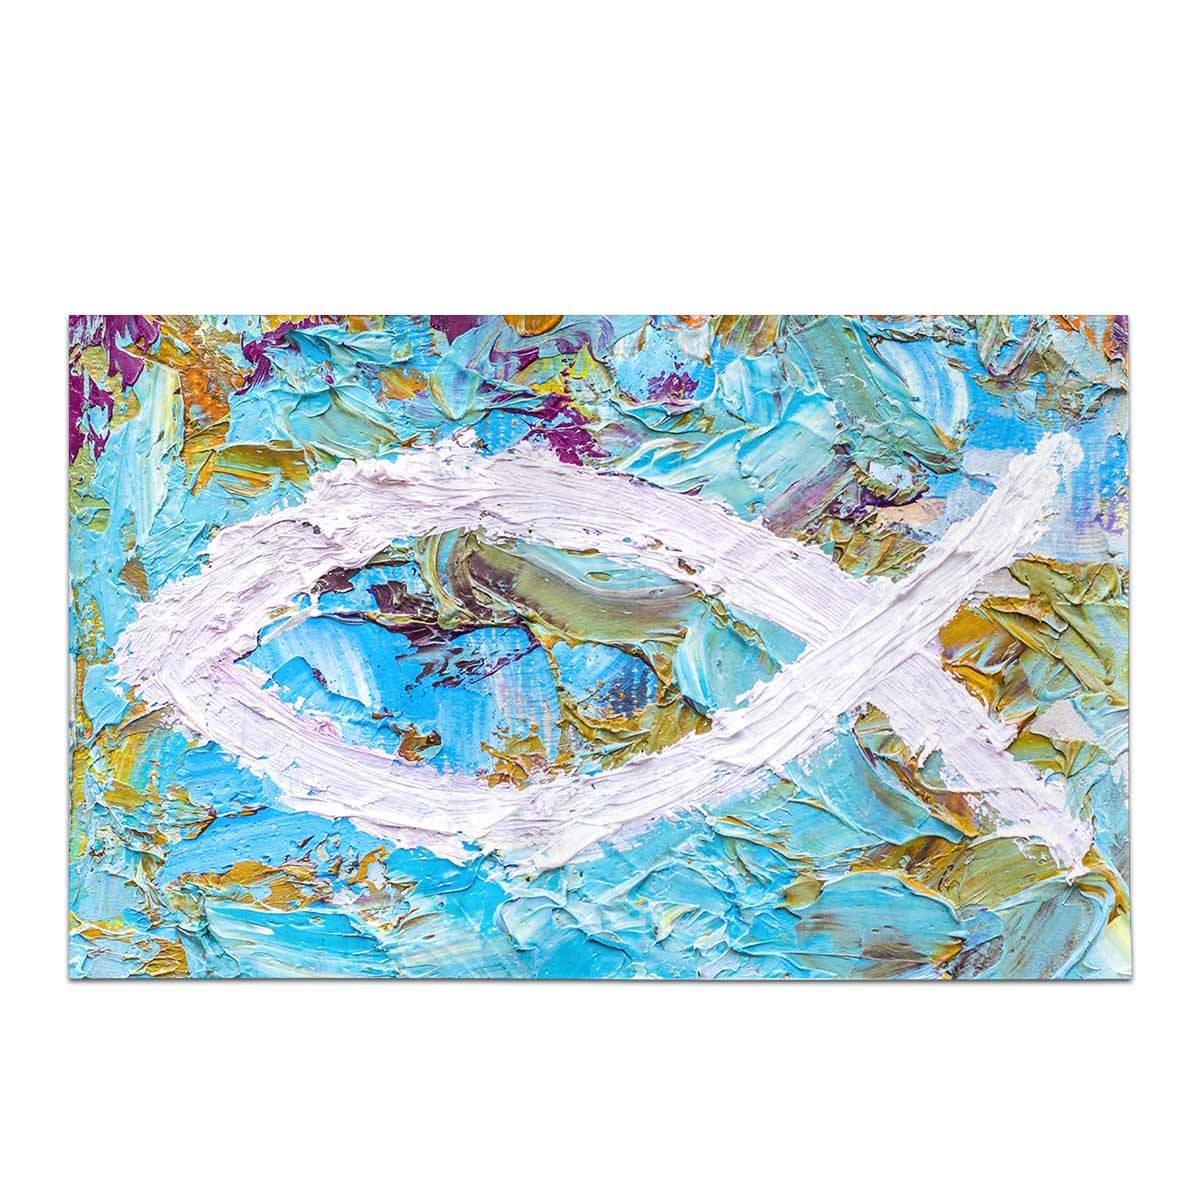 InterestPrint Colorful Christian Fish Christian Symbol Decor Non Slip Bath Rug Mat Absorbent Bathroom Floor Mat Doormat Large Size 20 x 32 Inches